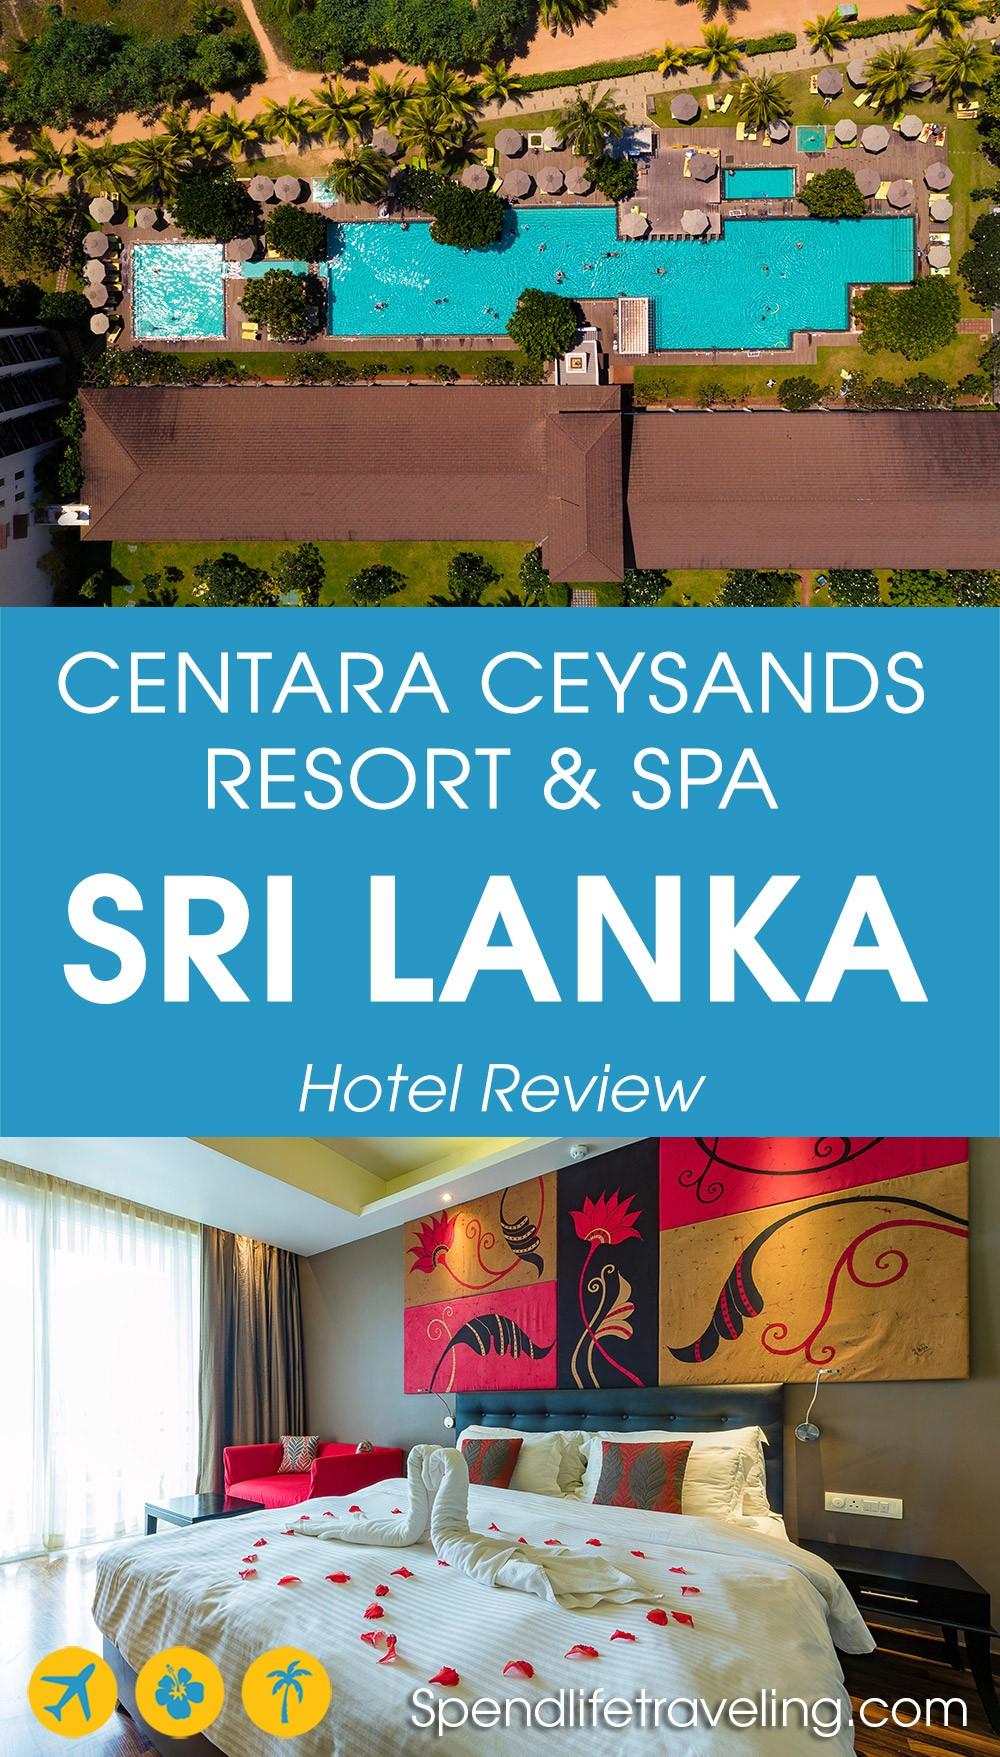 #Bentota is a popular coastal town in Sri Lanka with an incredible beach and great resorts. This is a review of #Centara Ceysands Resort & Spa. #SriLanka #SriLankahotels #hotelreview